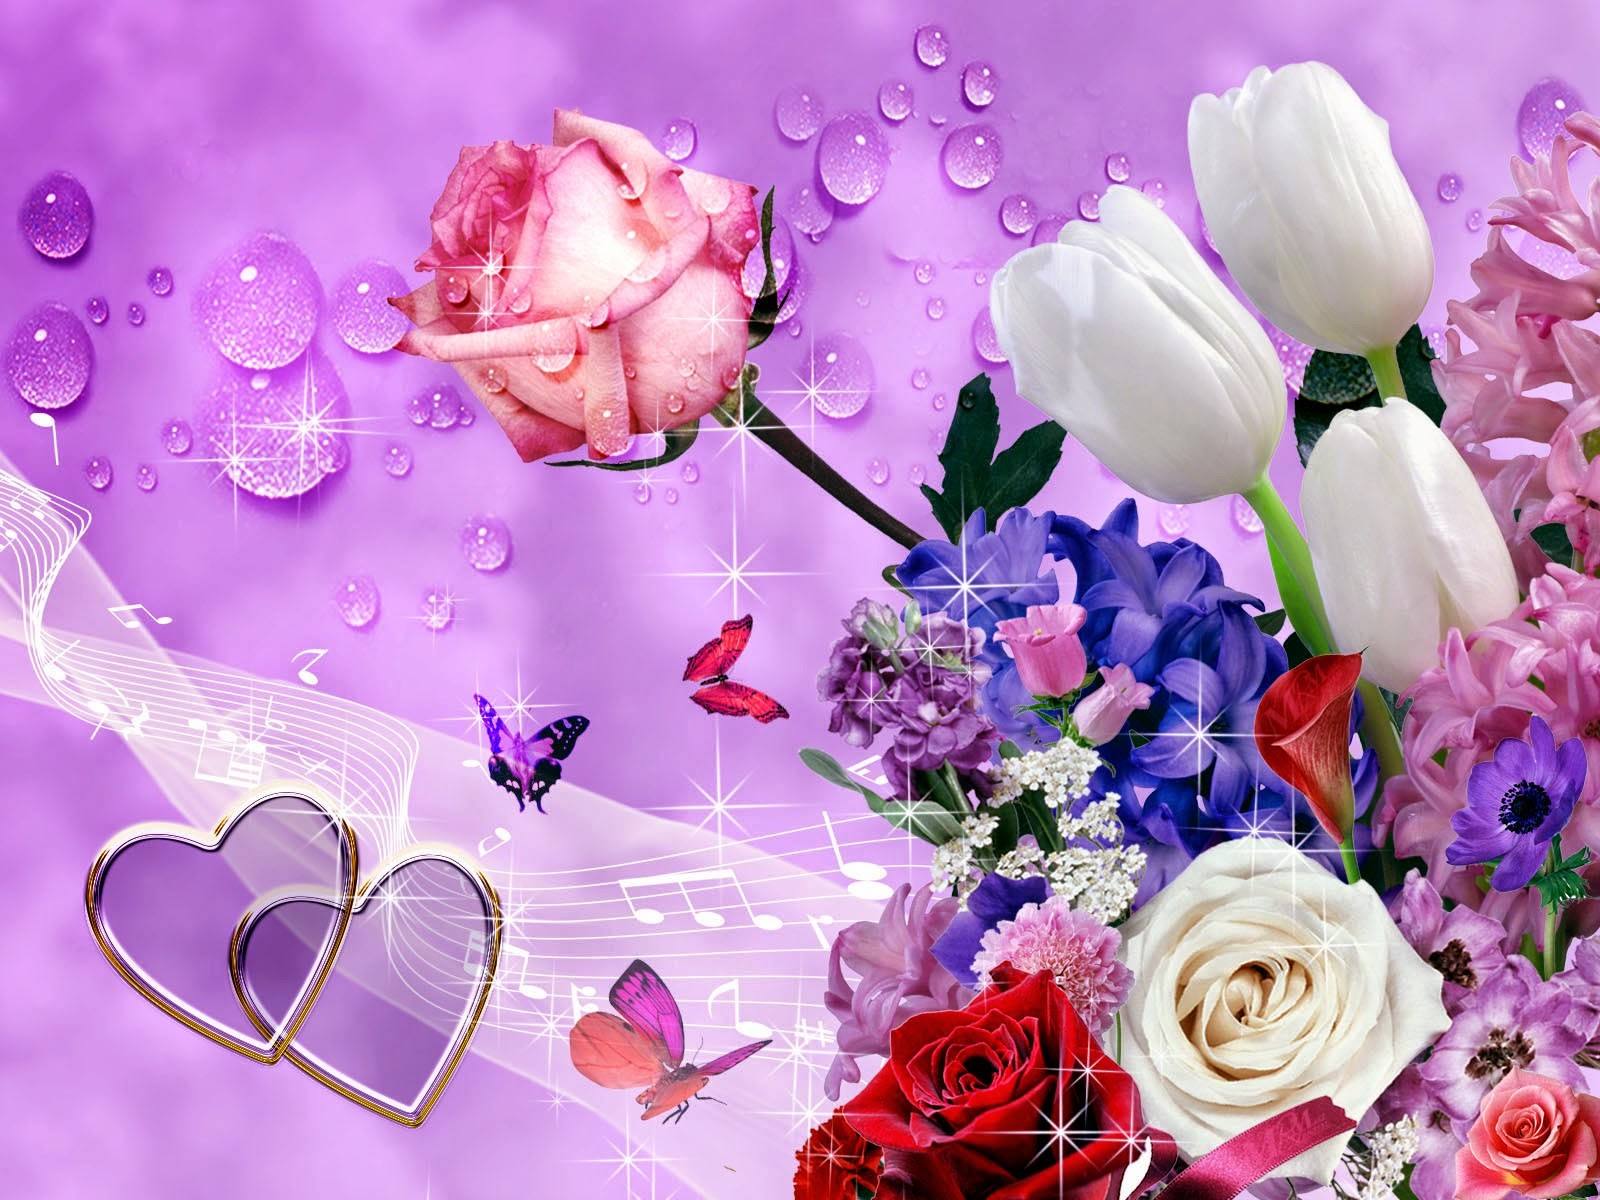 Wallpapers beautiful flowers wallpapers download free for desktop pc fresh flowers background izmirmasajfo